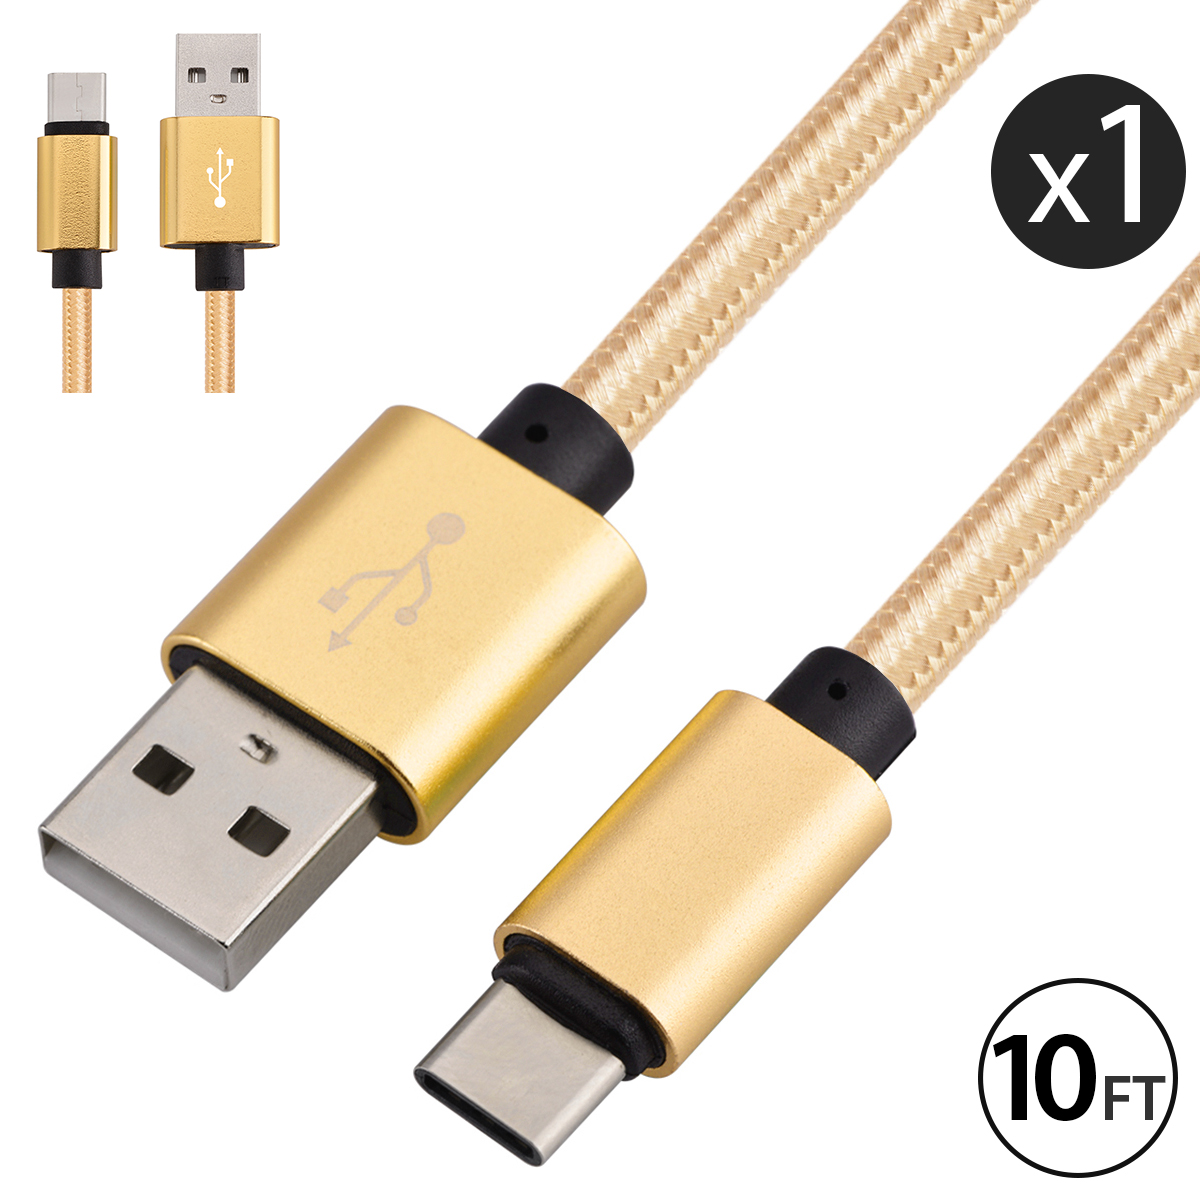 USB Type C Cable Charger, FREEDOMTECH 10ft USB C to USB A Charger Nylon Braided Cable Fast Charger Cord For Samsung Galaxy Note 8, Galaxy S8/S8+, Apple New Macbook, Nexus 6P 5X, Google Pixel, LG G5 G6